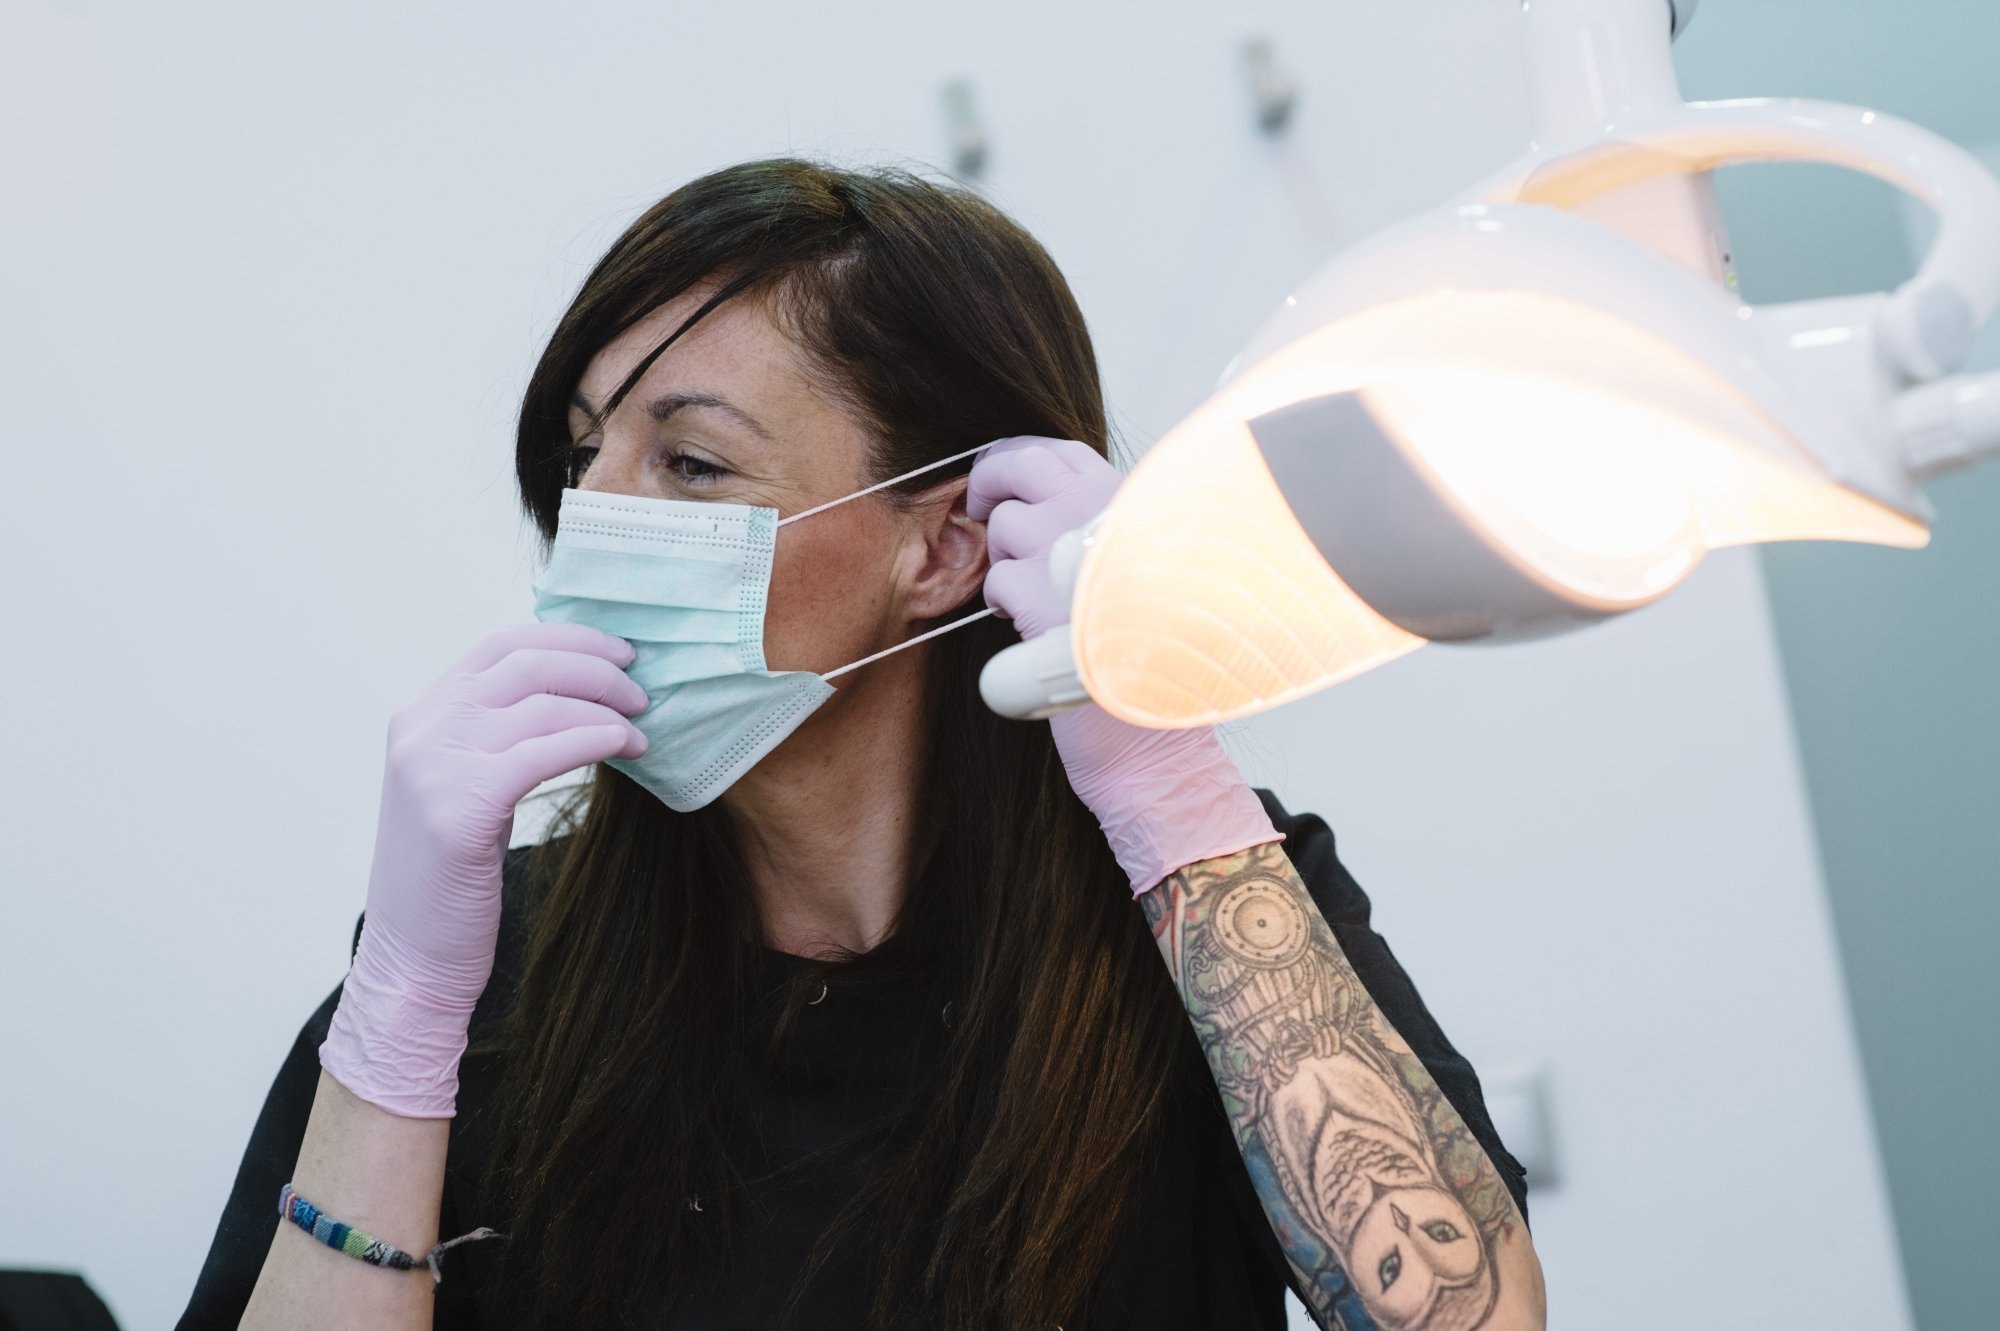 Tattoos and piercings in dental workplace